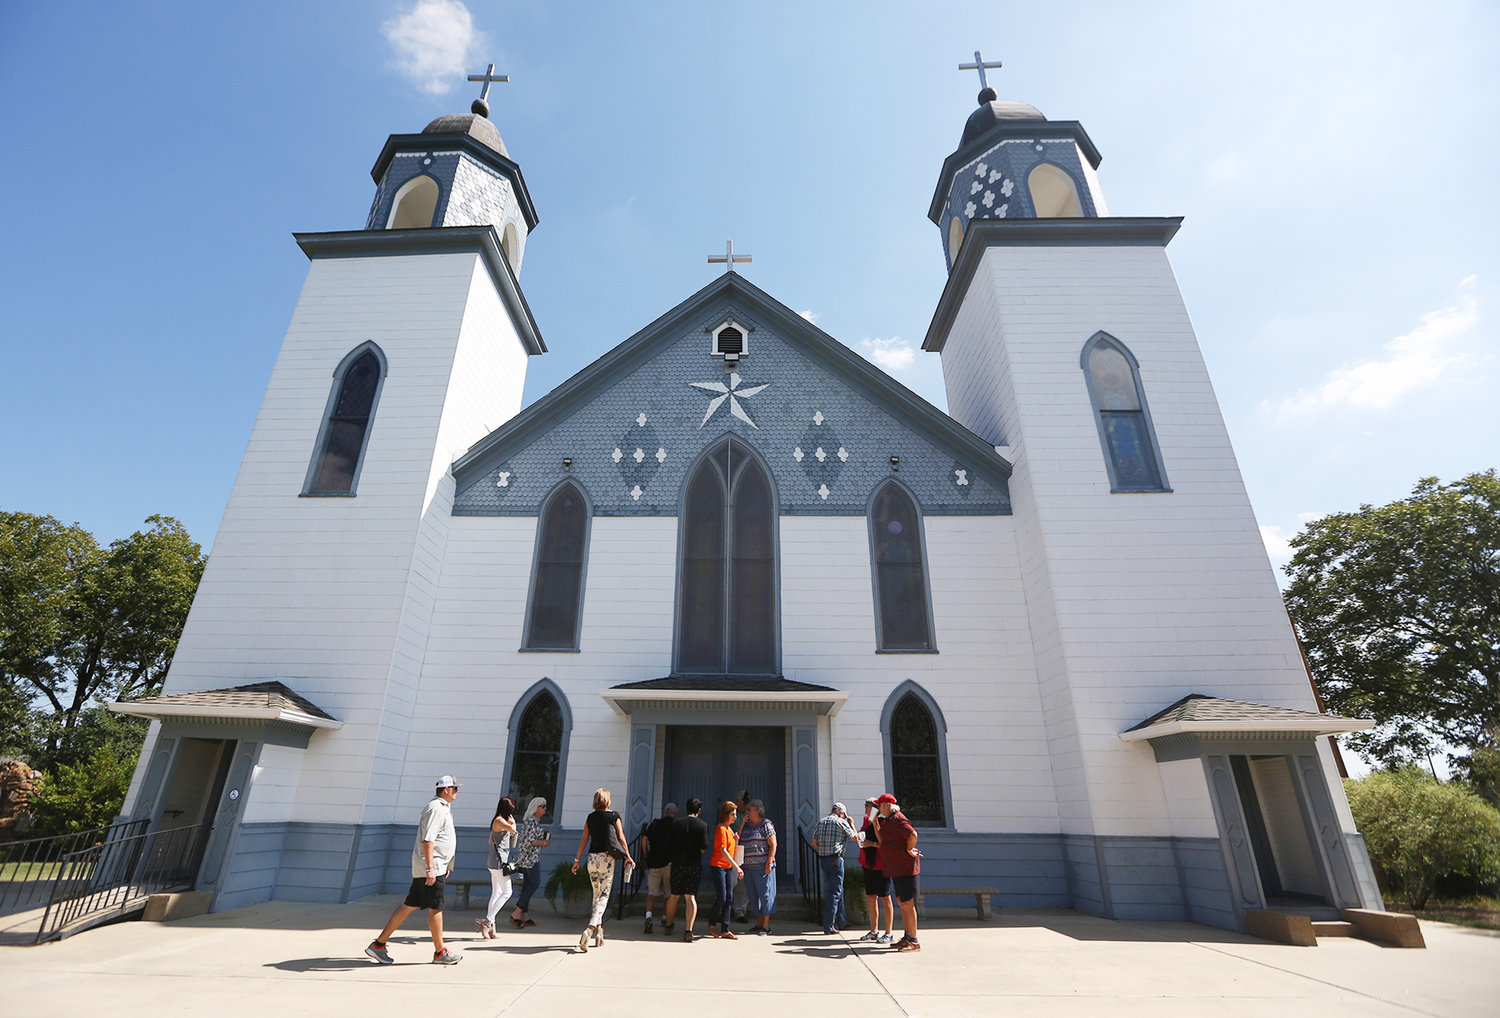 Parishioners enter the historic 124-year-old Church of the Visitation Oct. 7, 2017, in Westphalia, Texas. The church was destroyed in a fire the morning of July 29, 2019. The parish has served the Catholic community of southwestern Falls County, many of them immigrants from the northwest German region of Westphalia, since 1883.